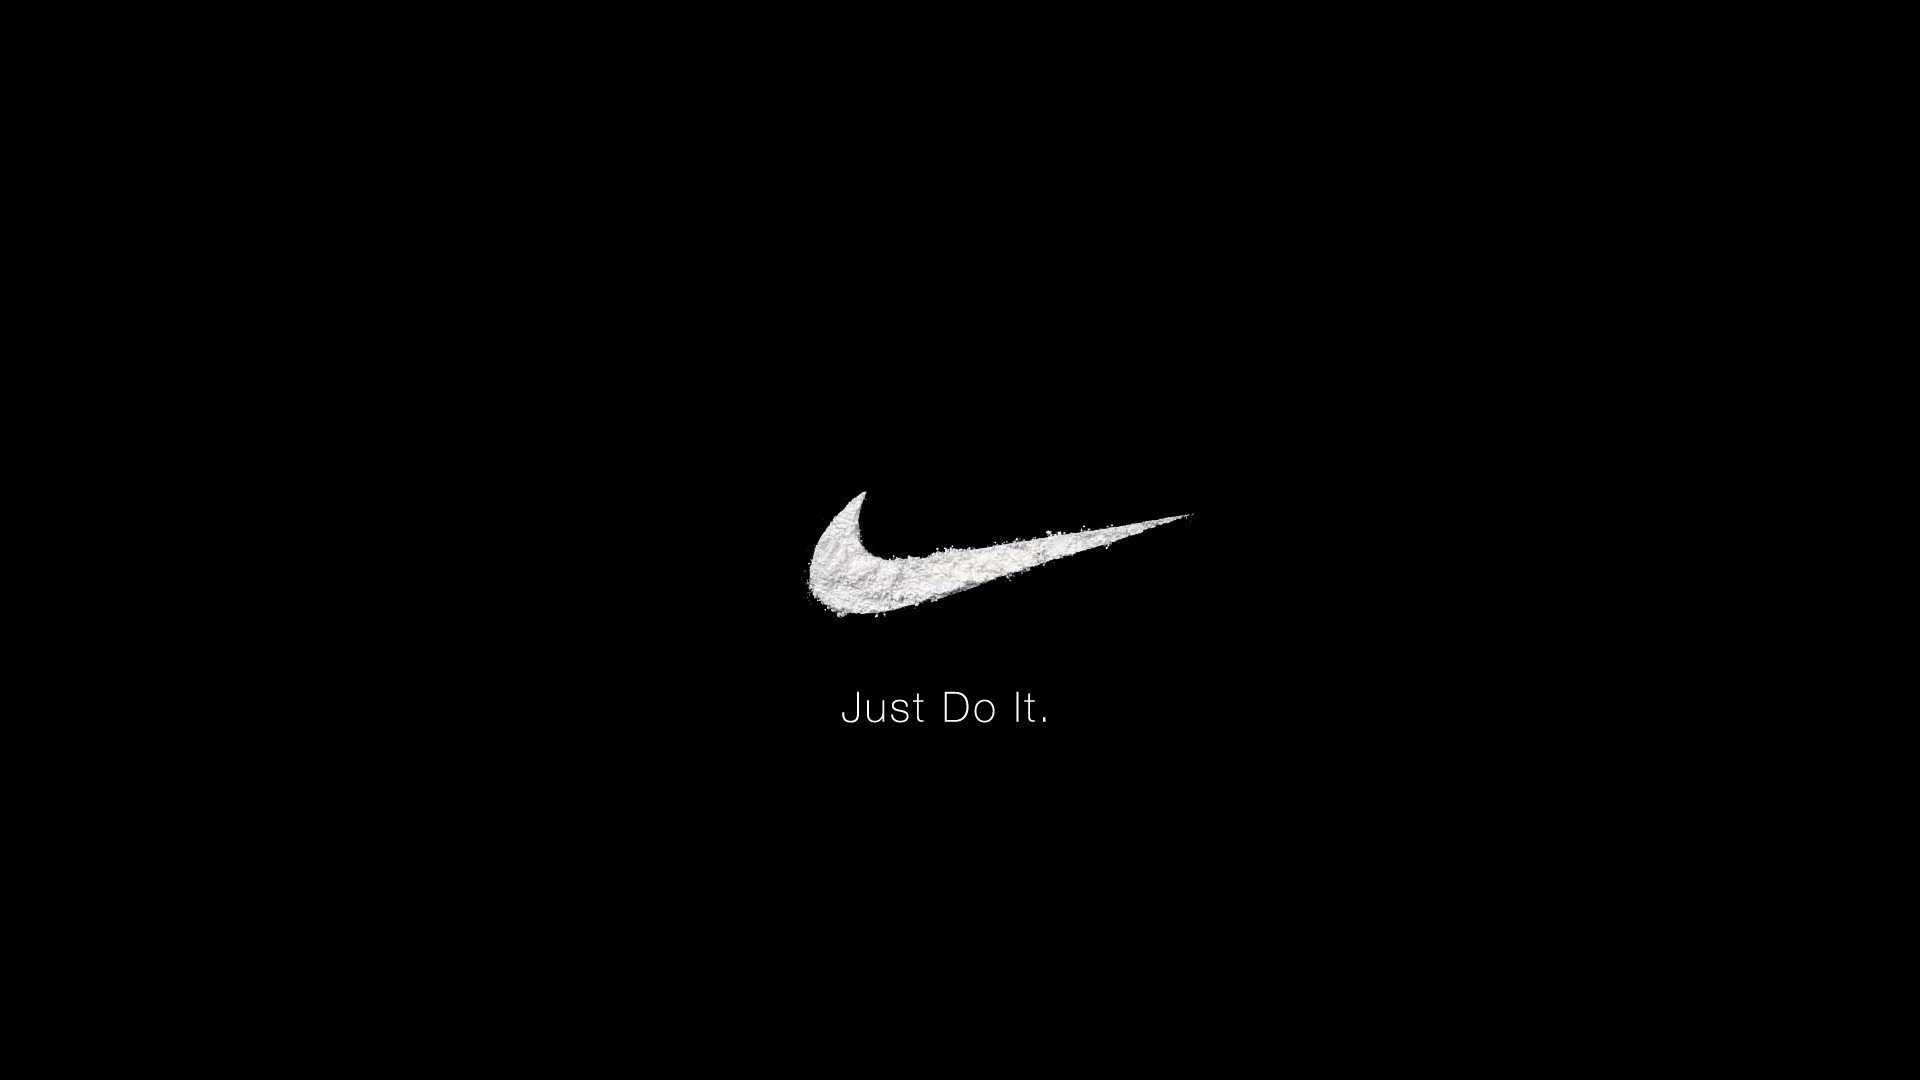 Nike wallpaper for iphone 79 images 1920x1080 nike logo blue hd wallpapers for iphone is a fantastic hd voltagebd Choice Image